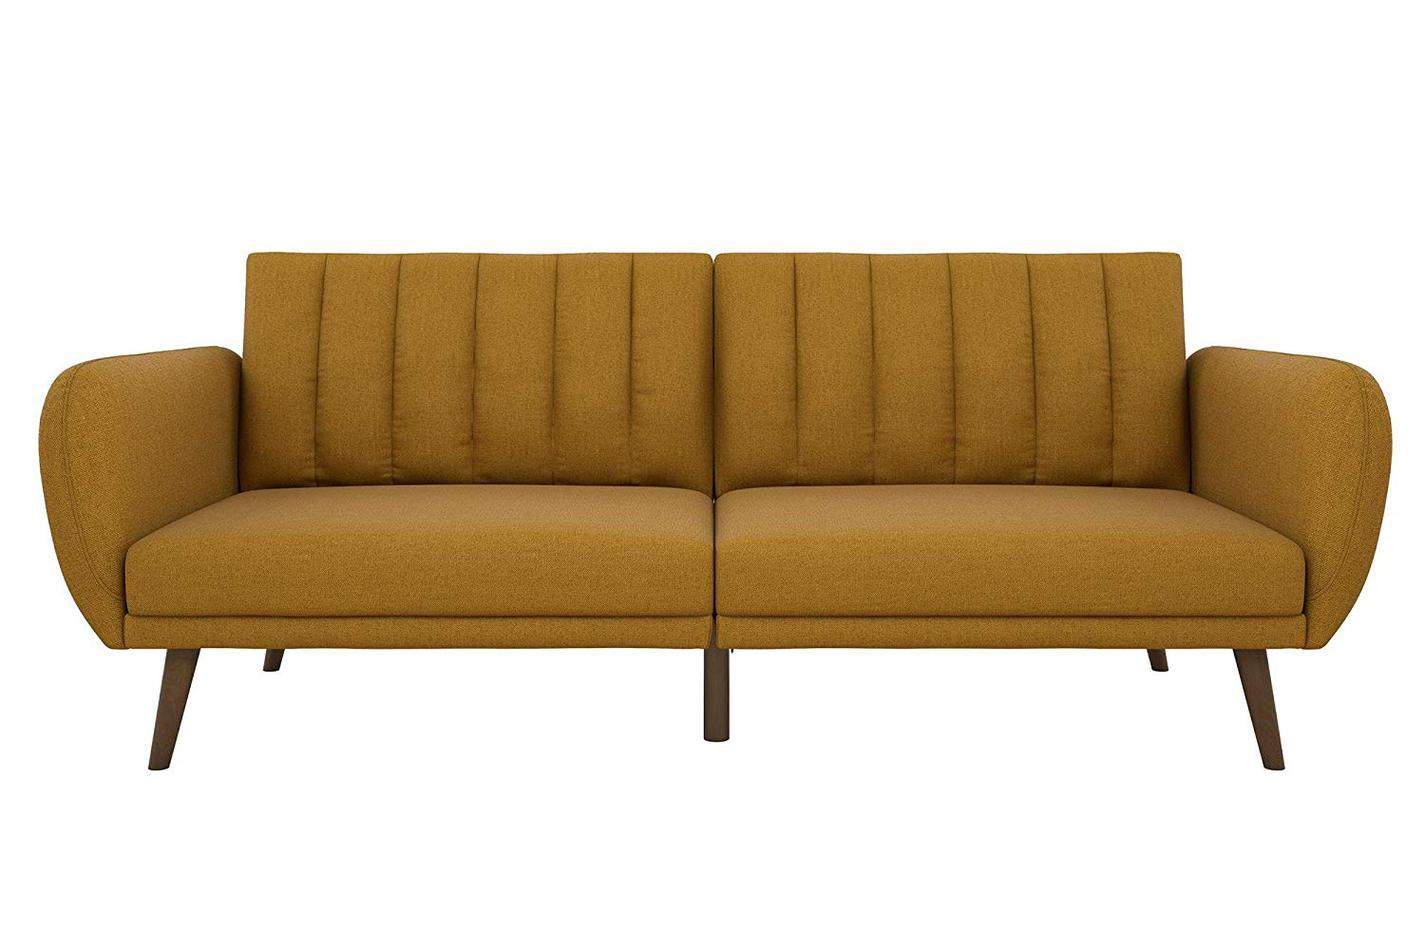 Sofa Futon Amazon